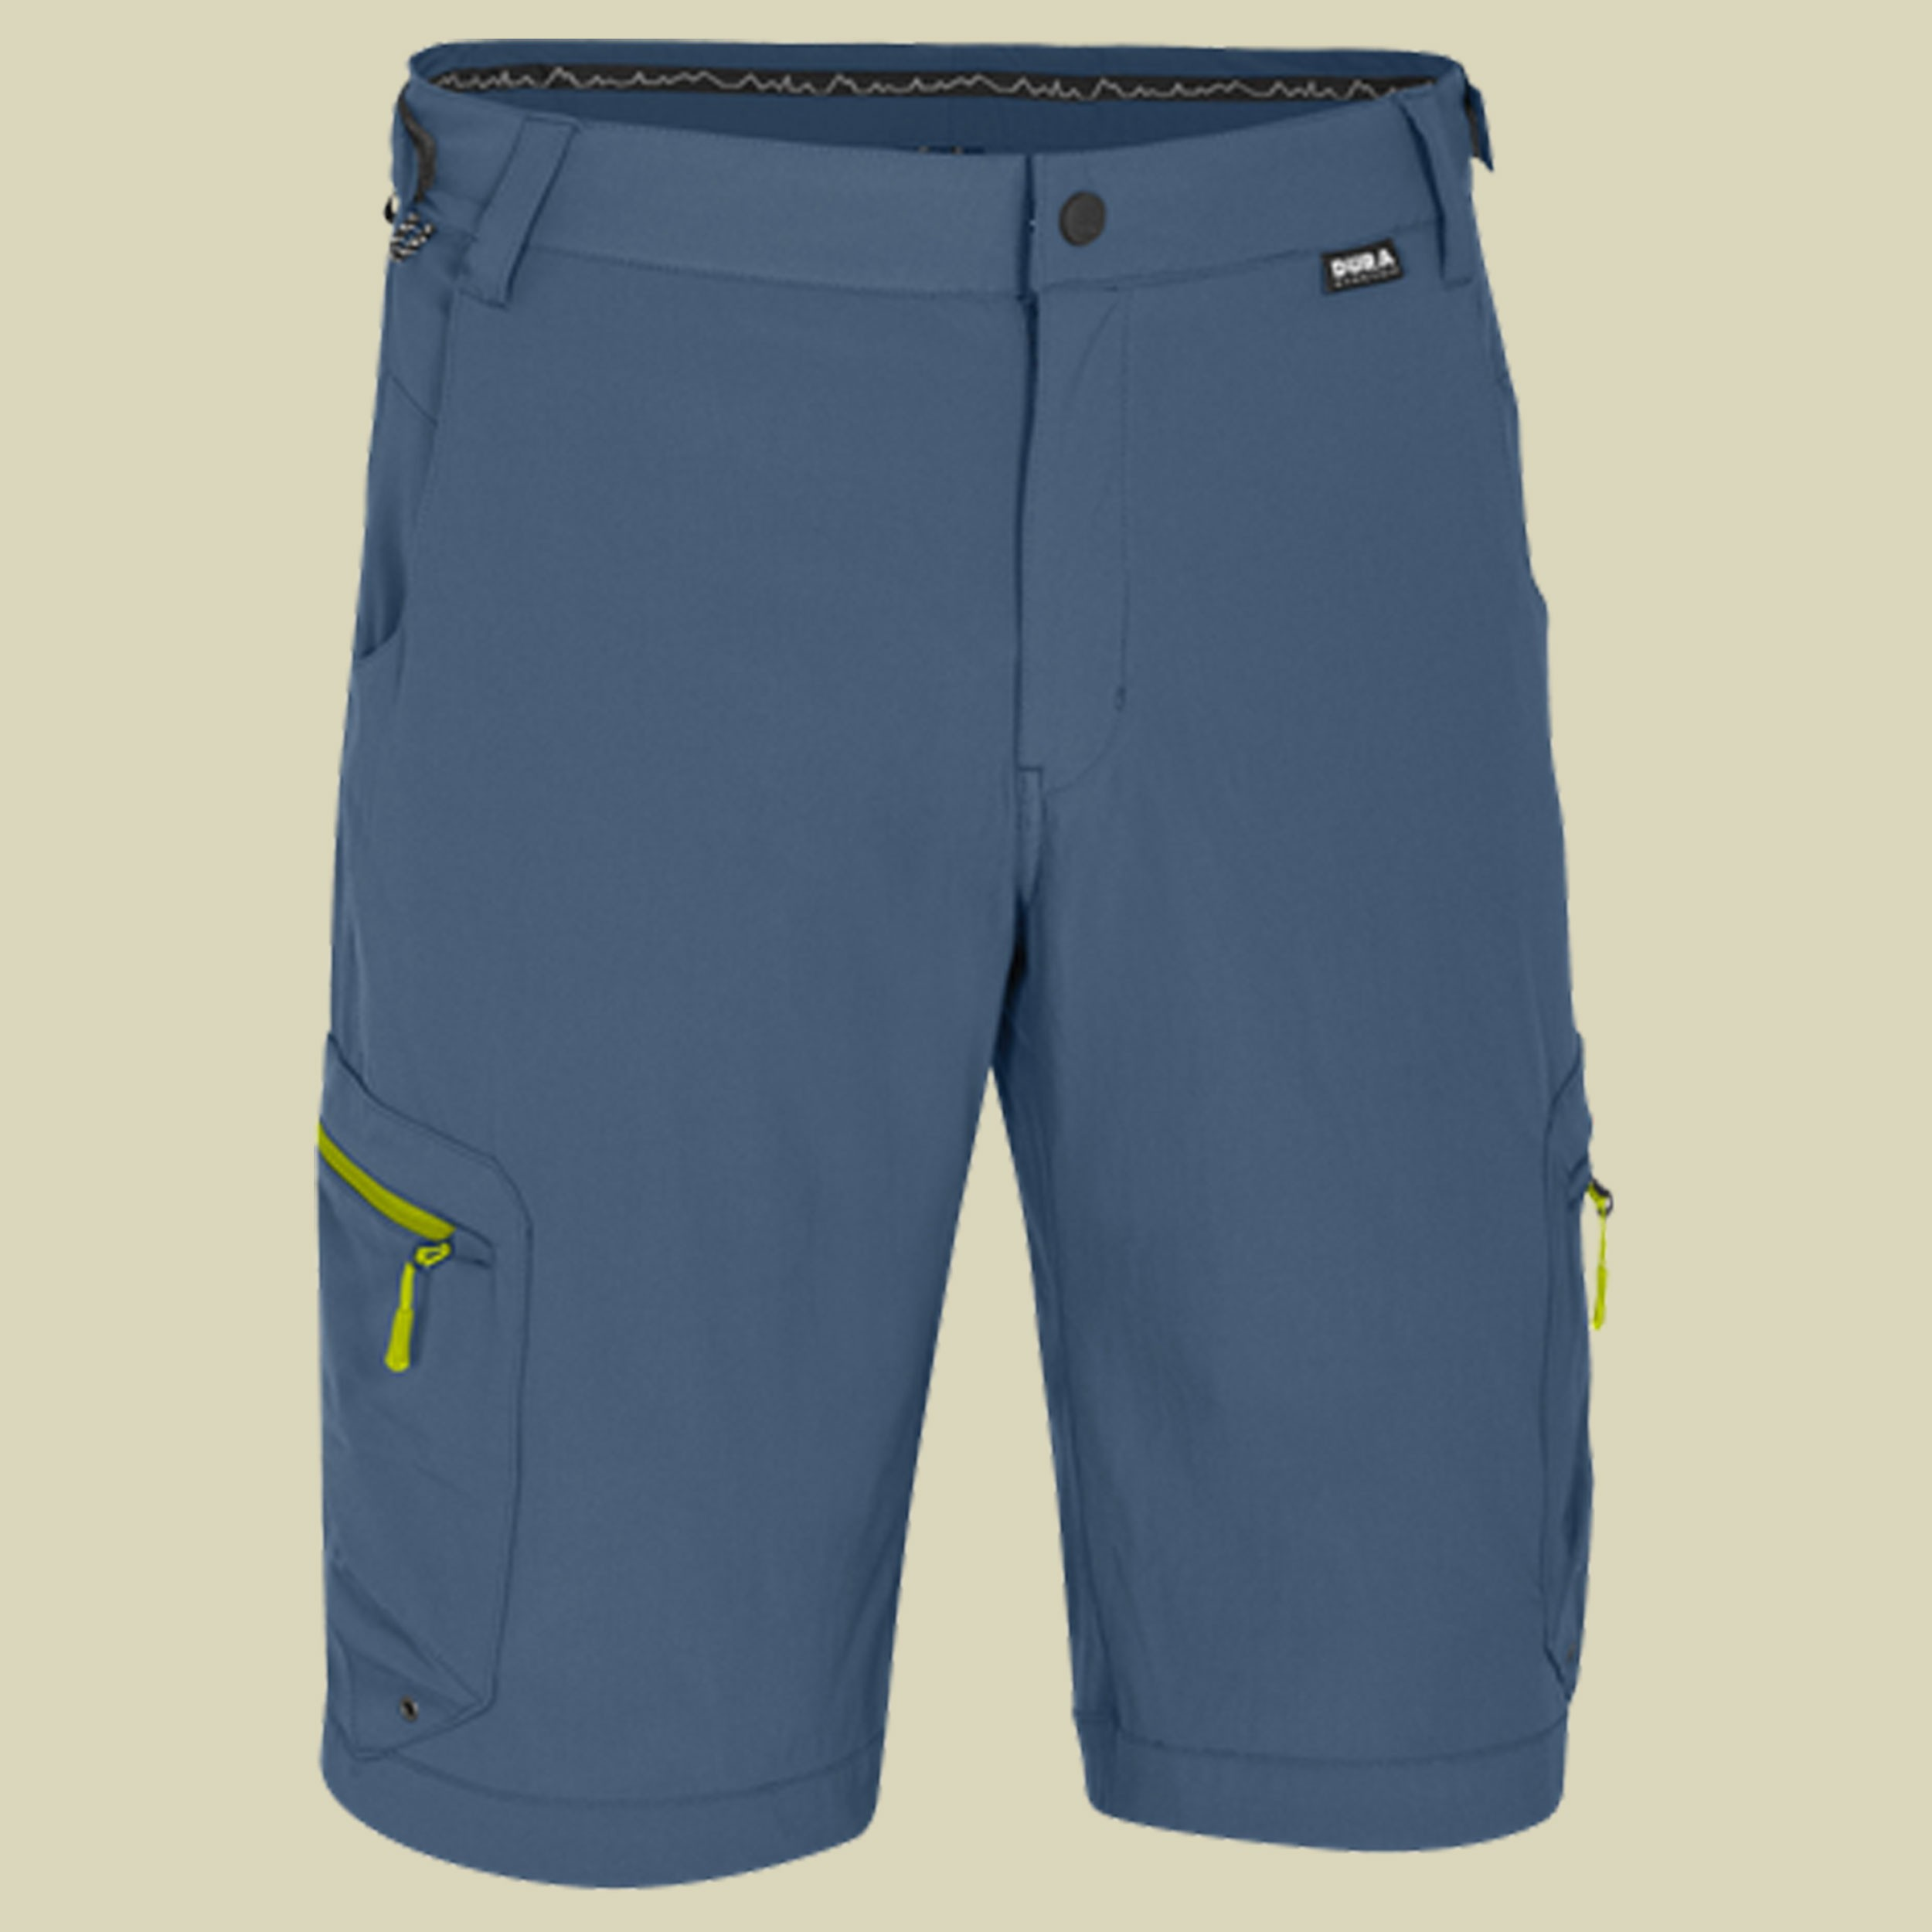 Cir DST Shorts Men